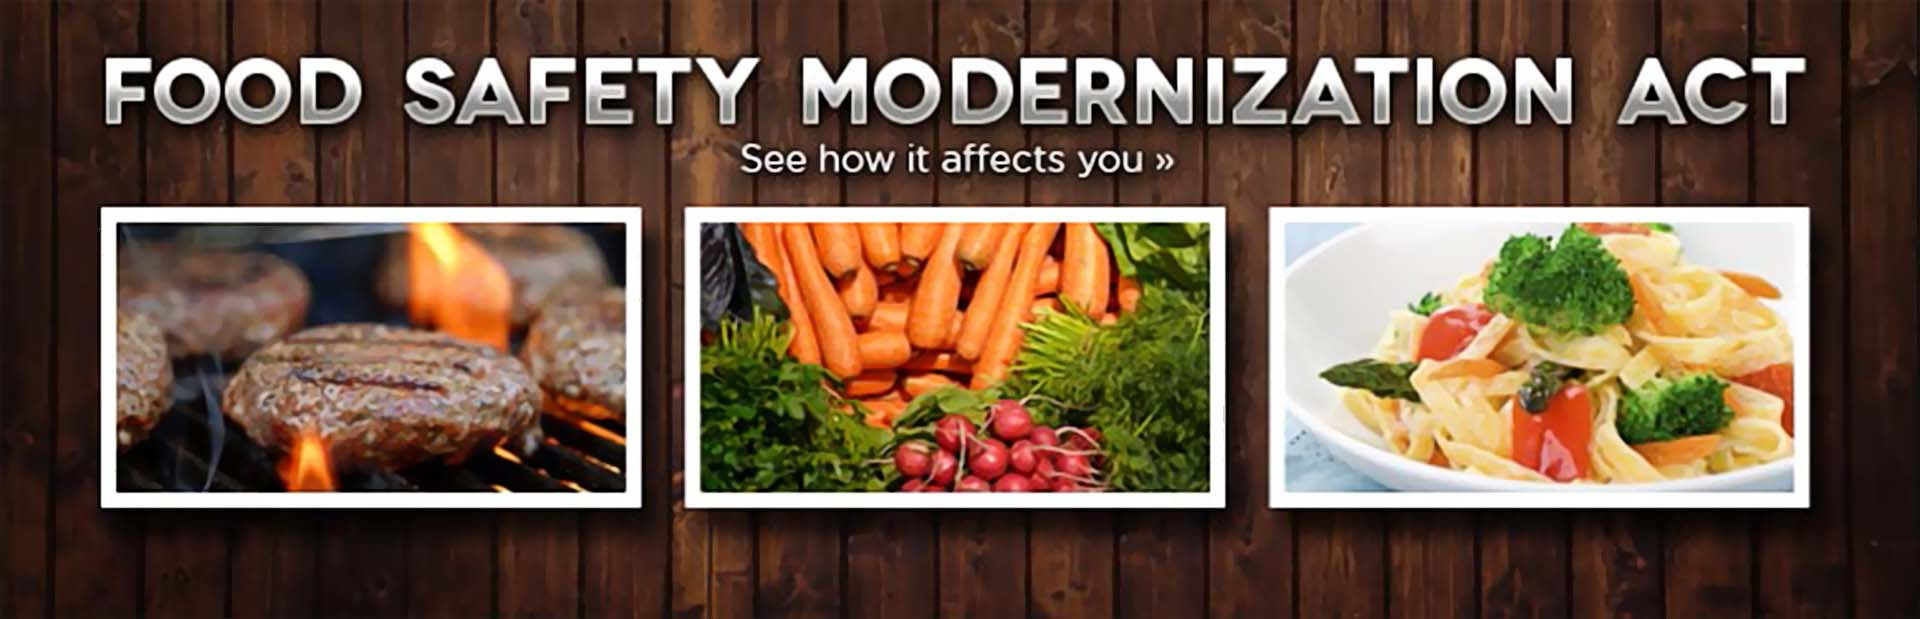 Food Safety Modernization Act: Click here to learn more.